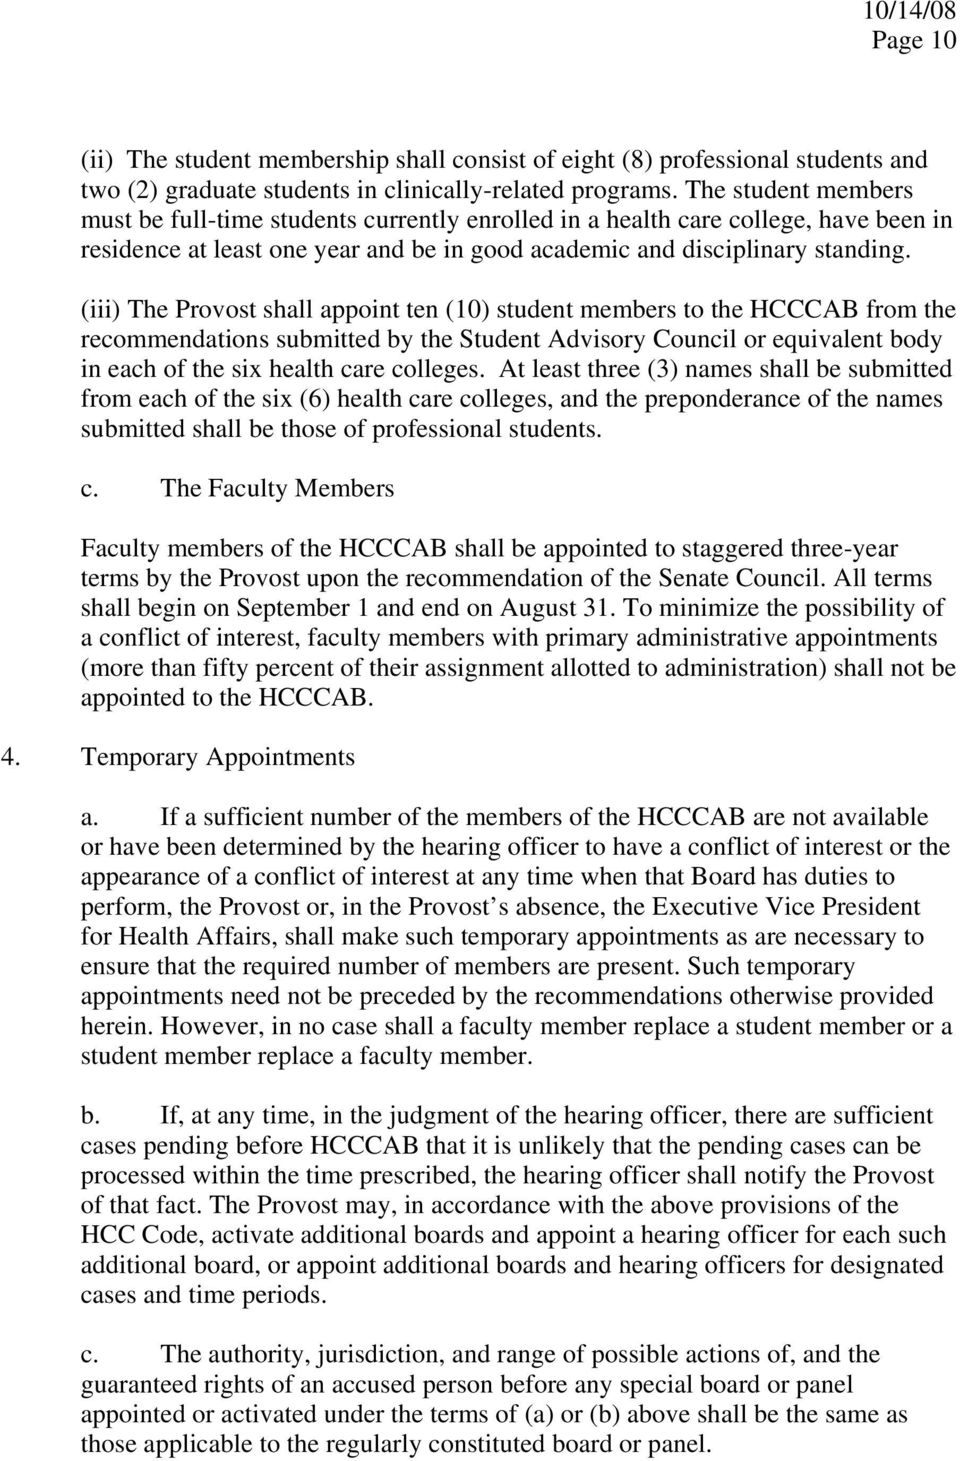 (iii) The Provost shall appoint ten (10) student members to the HCCCAB from the recommendations submitted by the Student Advisory Council or equivalent body in each of the six health care colleges.